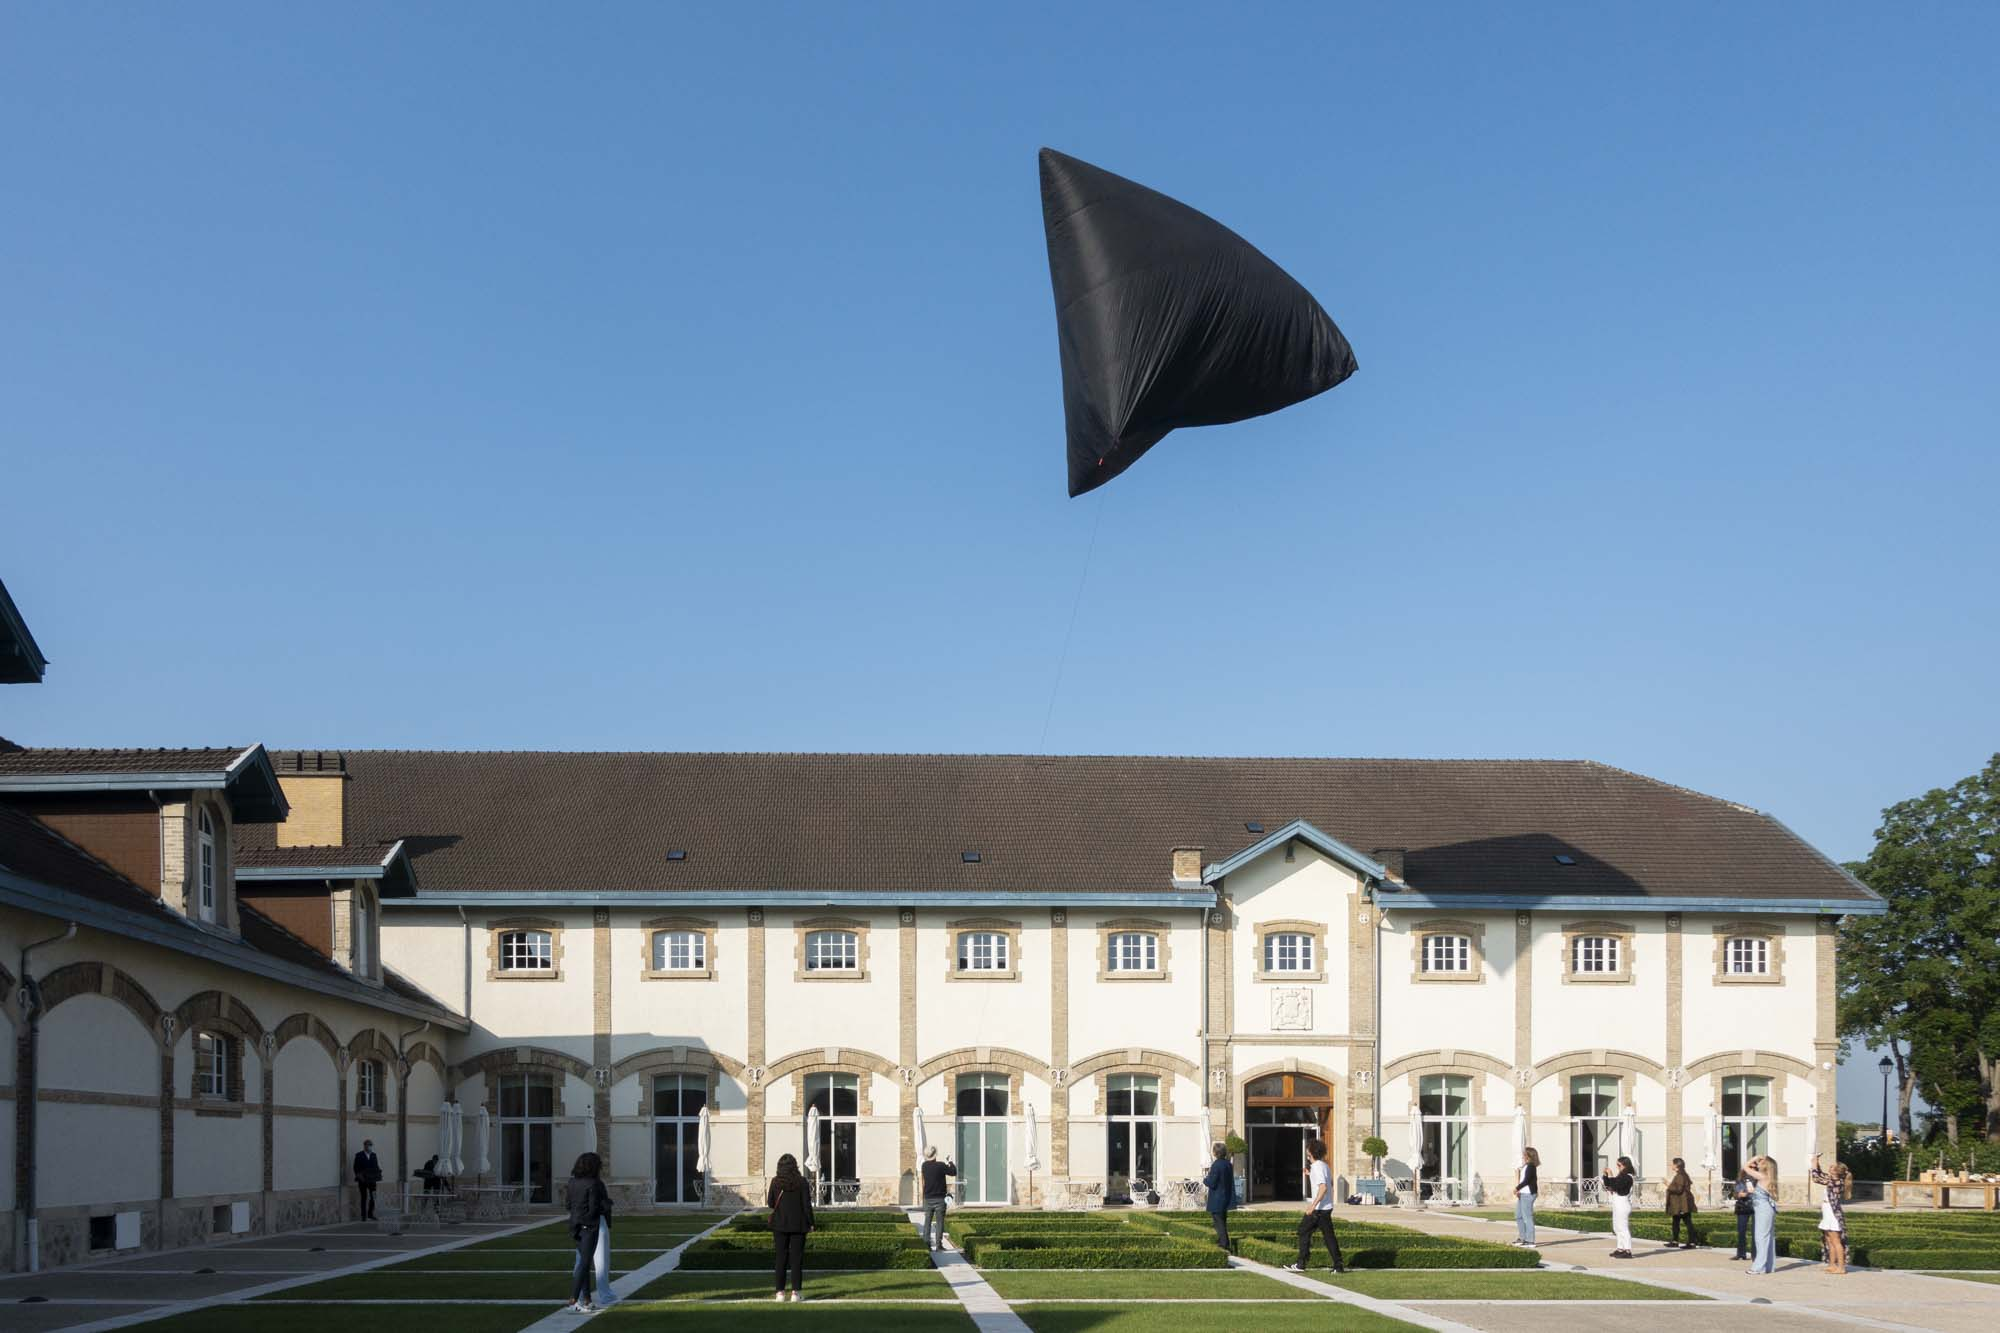 The black Aerocene Sculpture by Tomás Saraceno is floating in the sky above Maison Ruinart in Reims